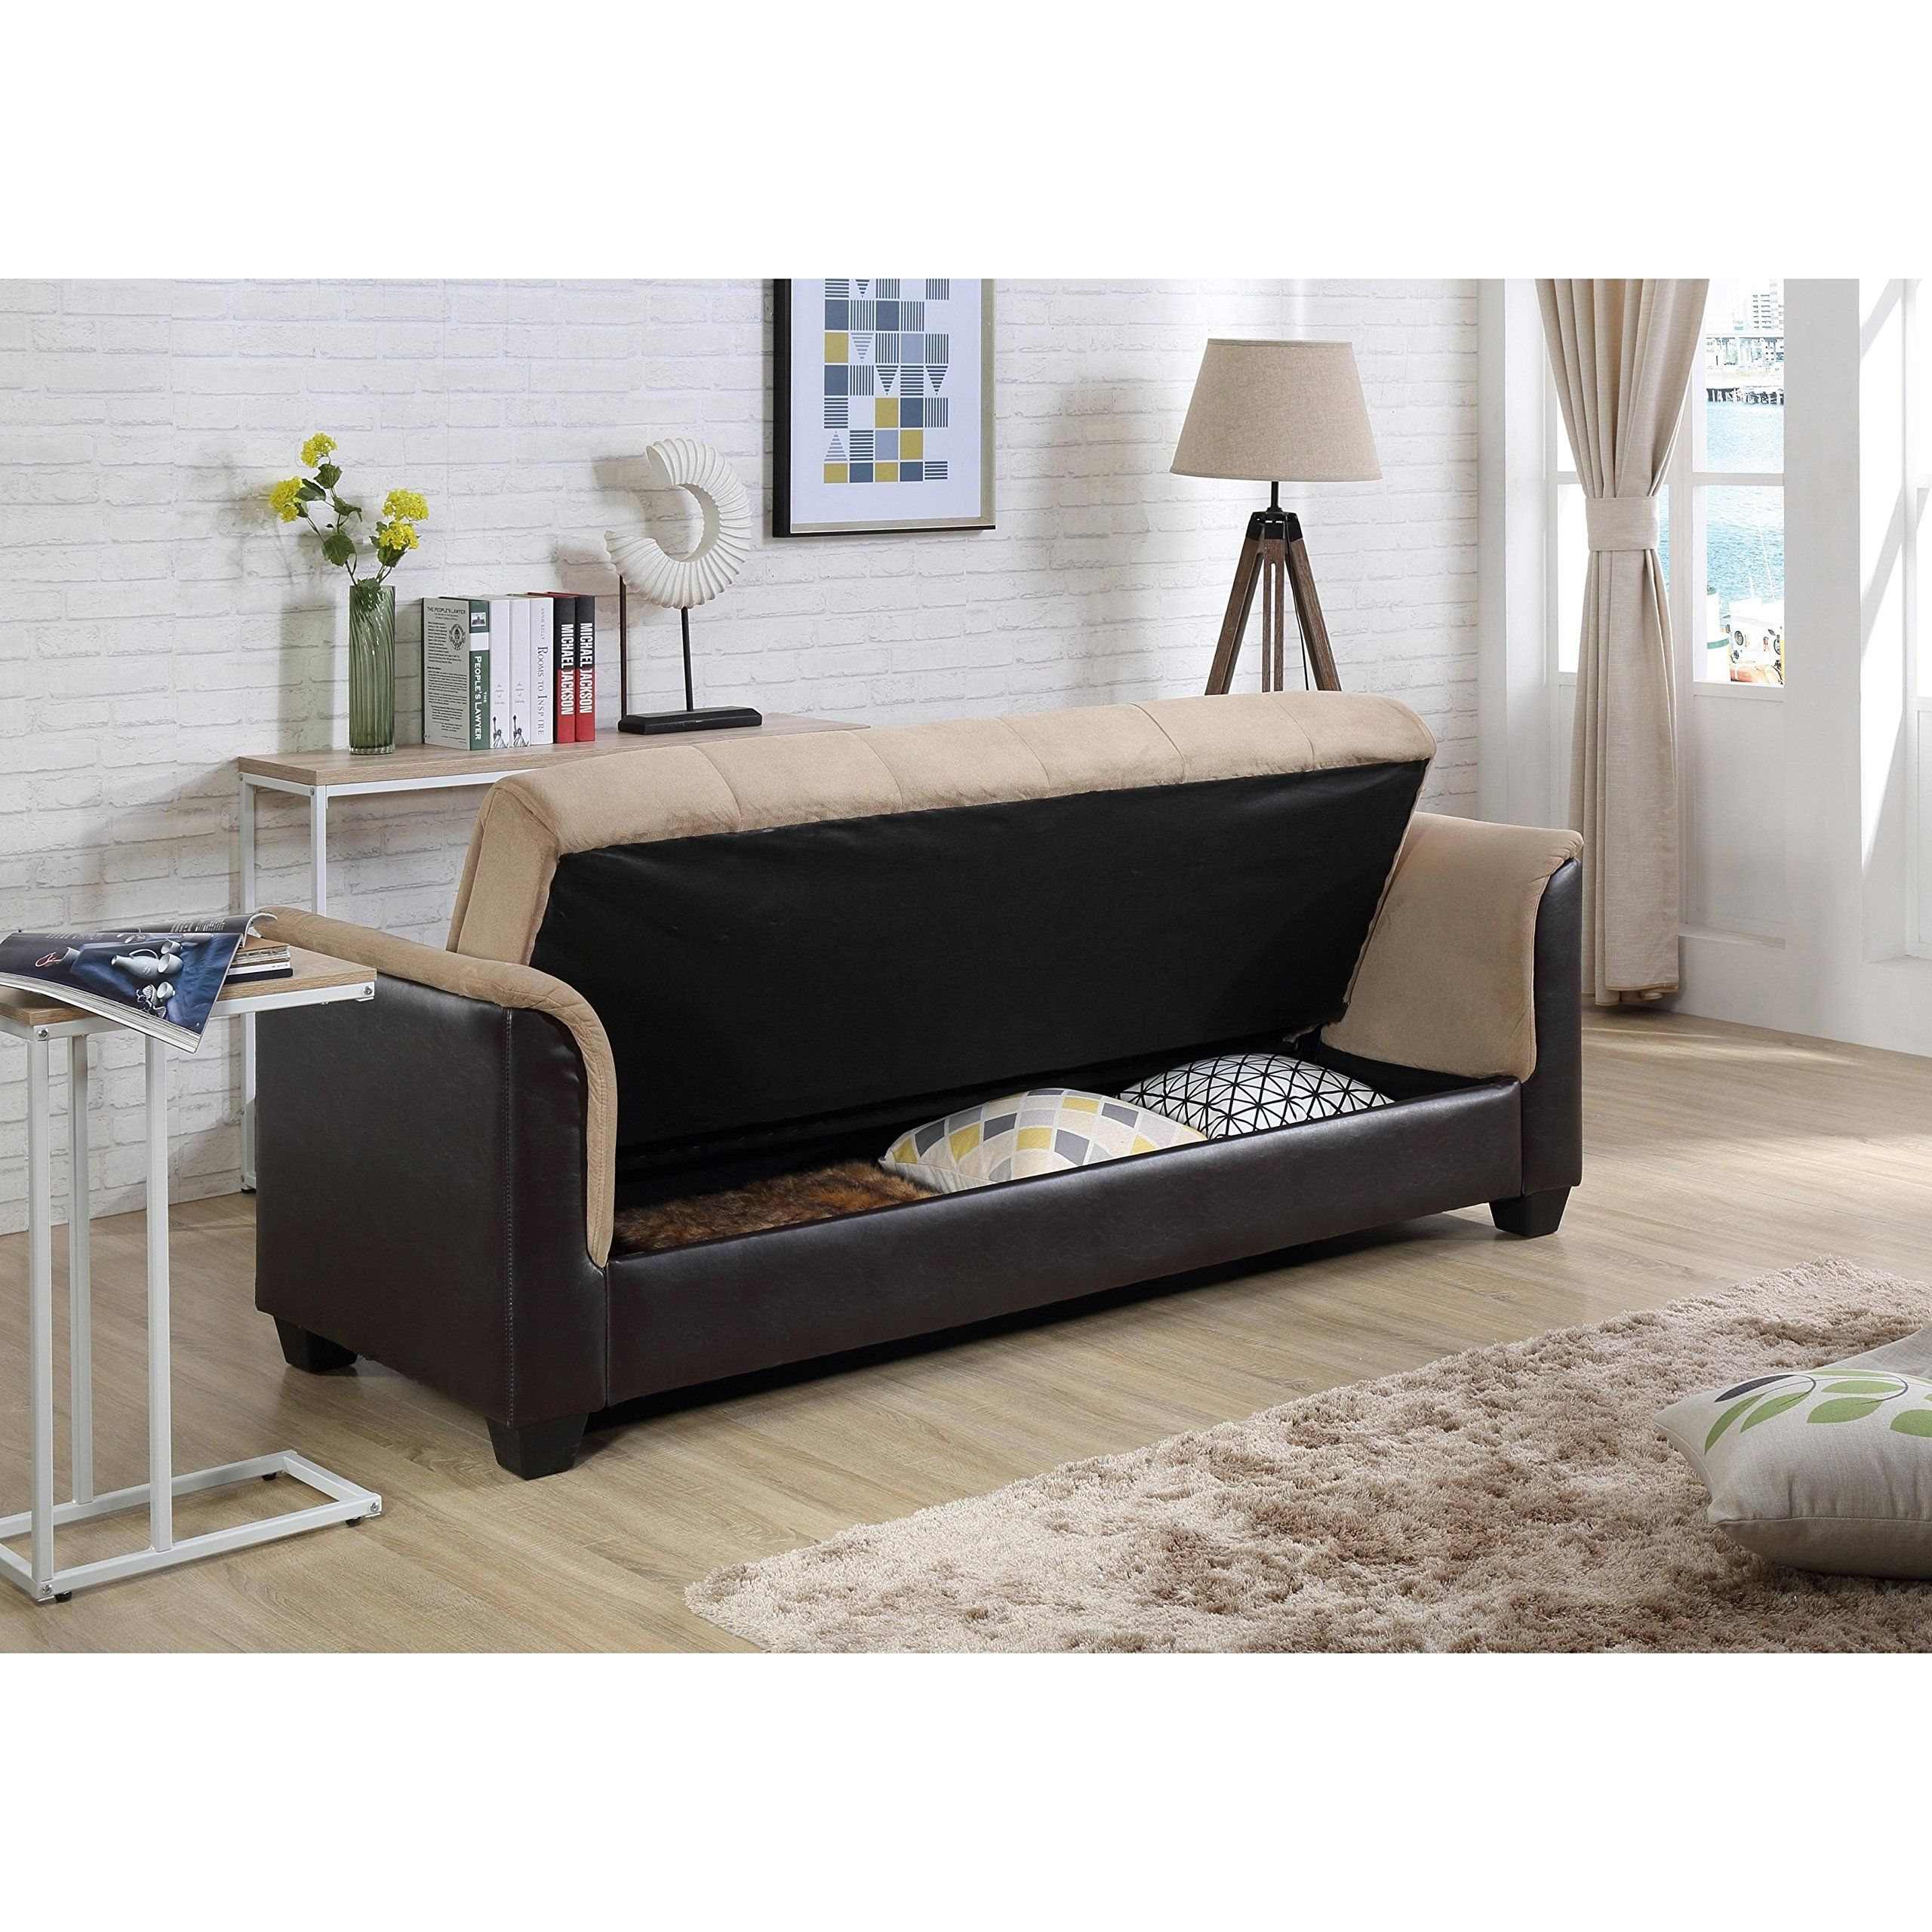 Storage Express Home: NHI Express Melanie Futon Sofa Bed With Storage Brown